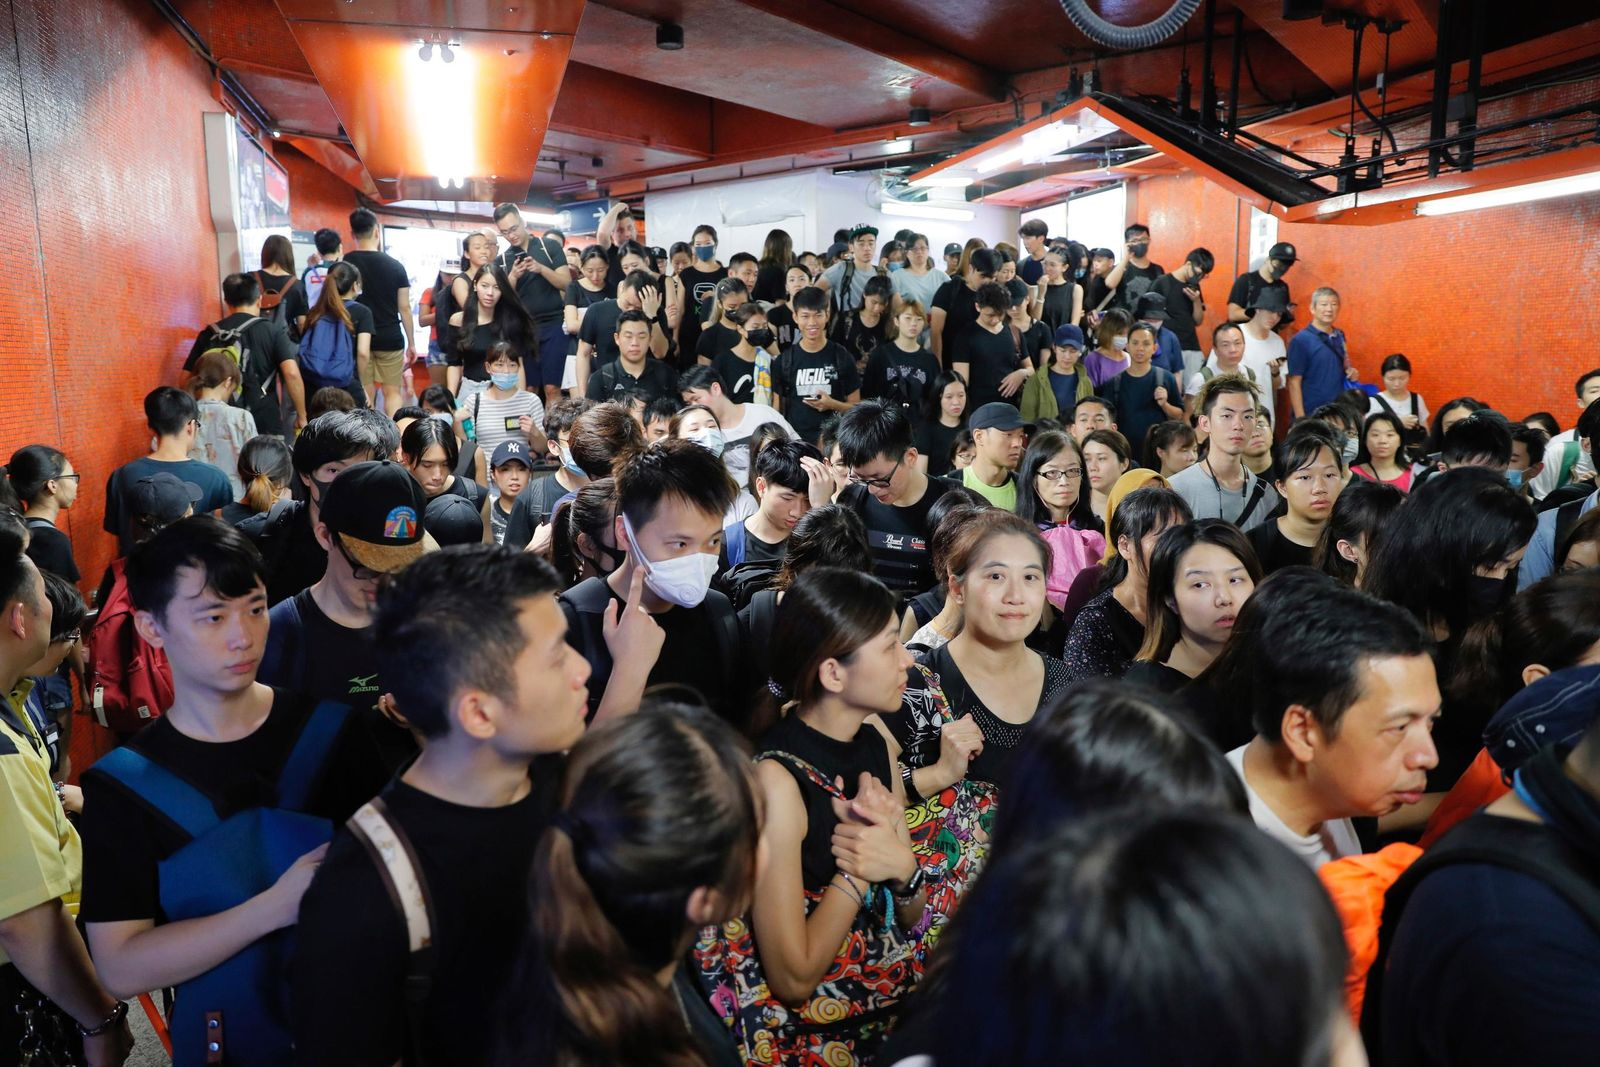 Protesters file into a subway station near Victoria Park in Hong Kong on Sunday, Aug. 18, 2019. (AP Photo/Kin Cheung)